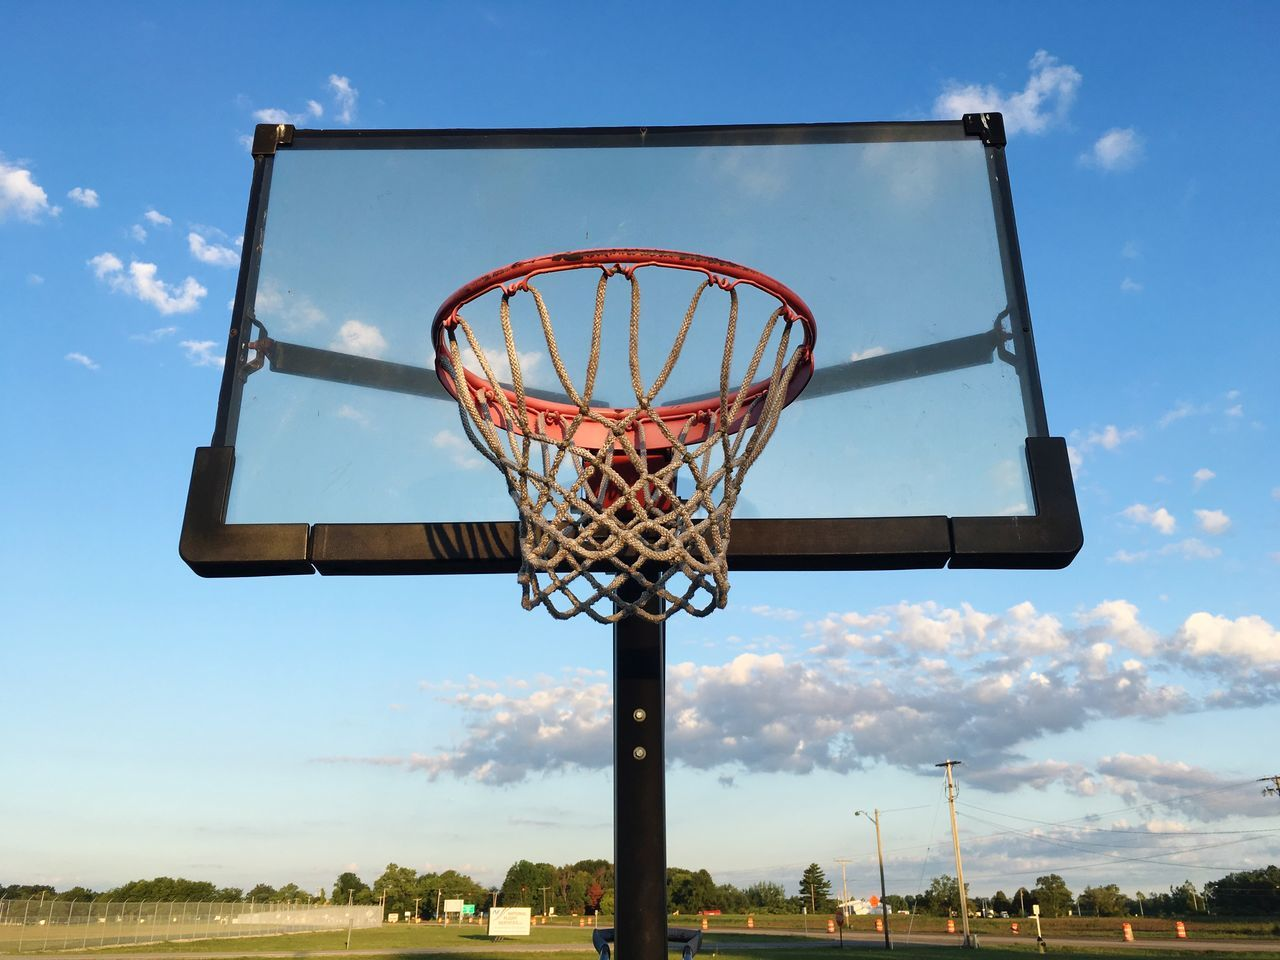 EyeEm Selects Basketball - Sport Basketball Hoop Sport Sky Basketball Low Angle View Cloud - Sky Day Making A Basket Blue Outdoors Court Taking A Shot - Sport Net - Sports Equipment Skill  Scoring Basketball Player No People